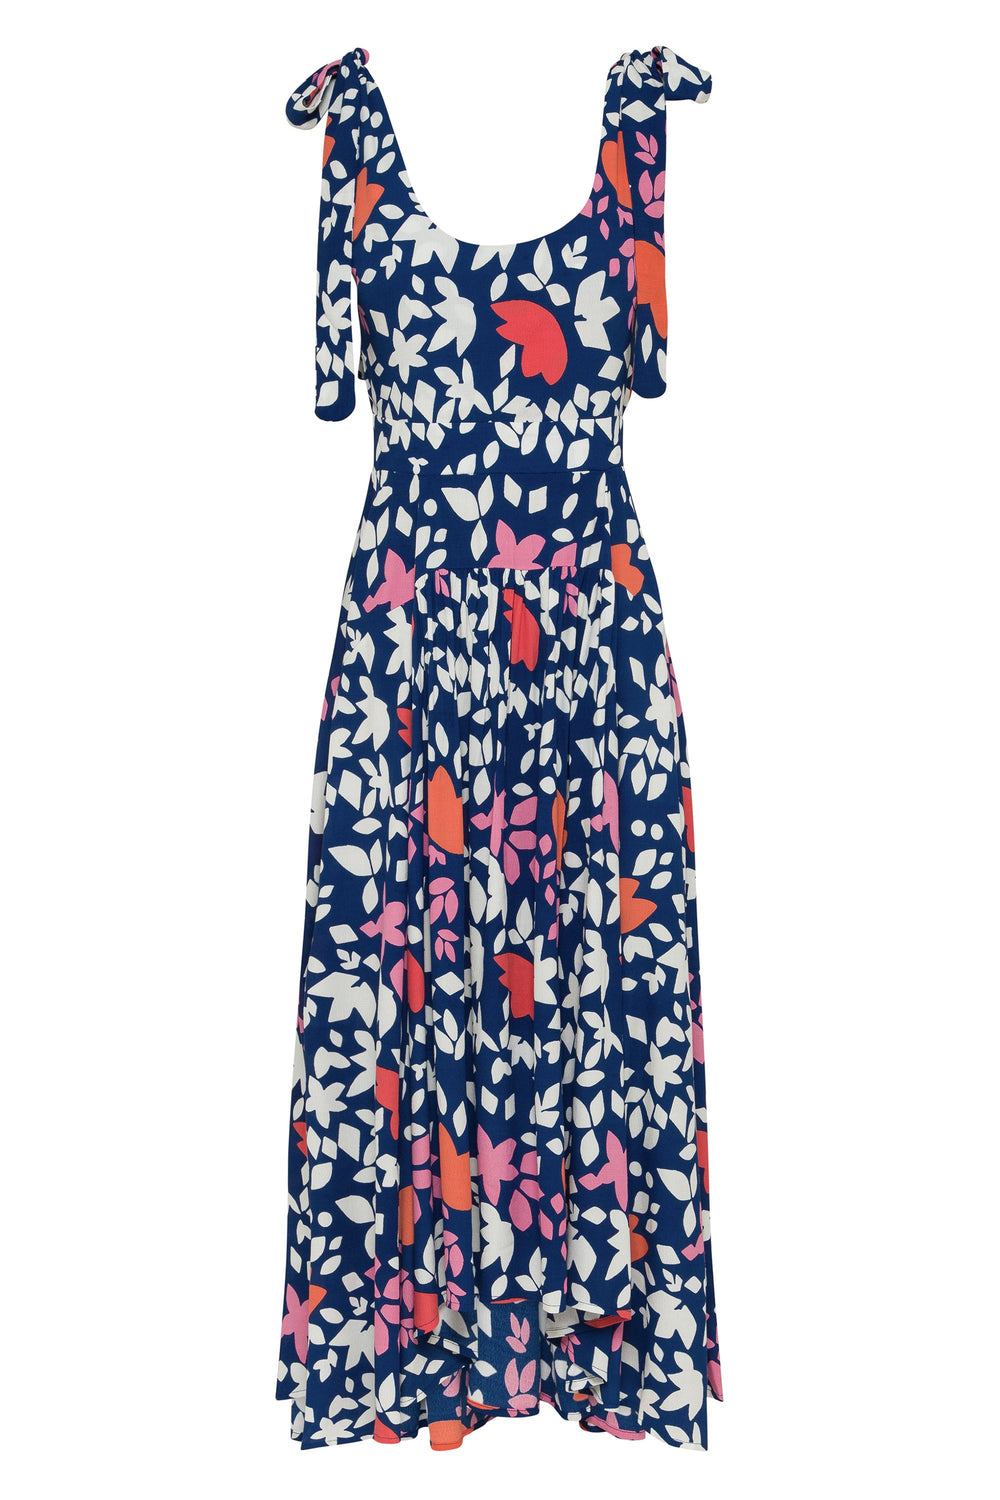 Annabelle Tie Dress In Del Mar